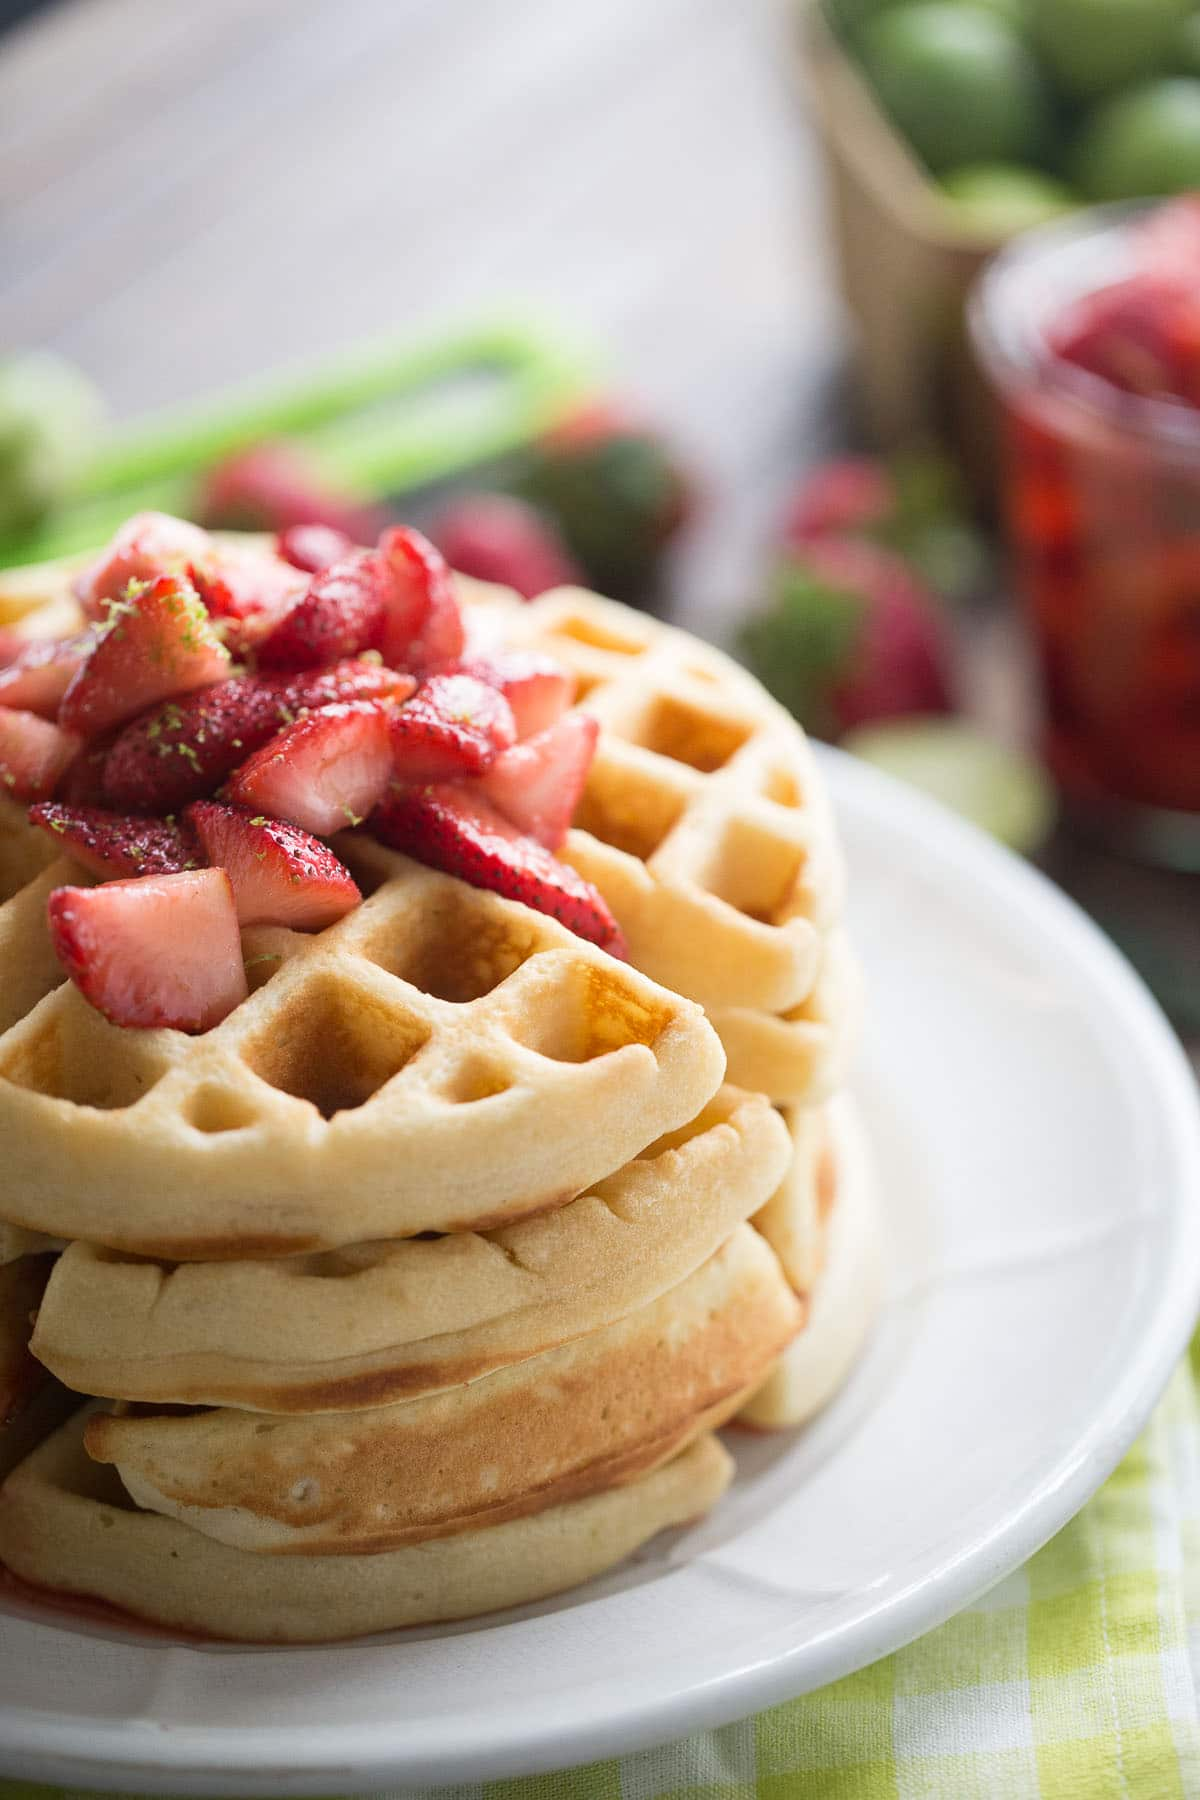 Who doesn't love waffles? This easy homemade waffles recipe is bursting with key lime flavor and is topped with a simple homemade strawberry sauce!